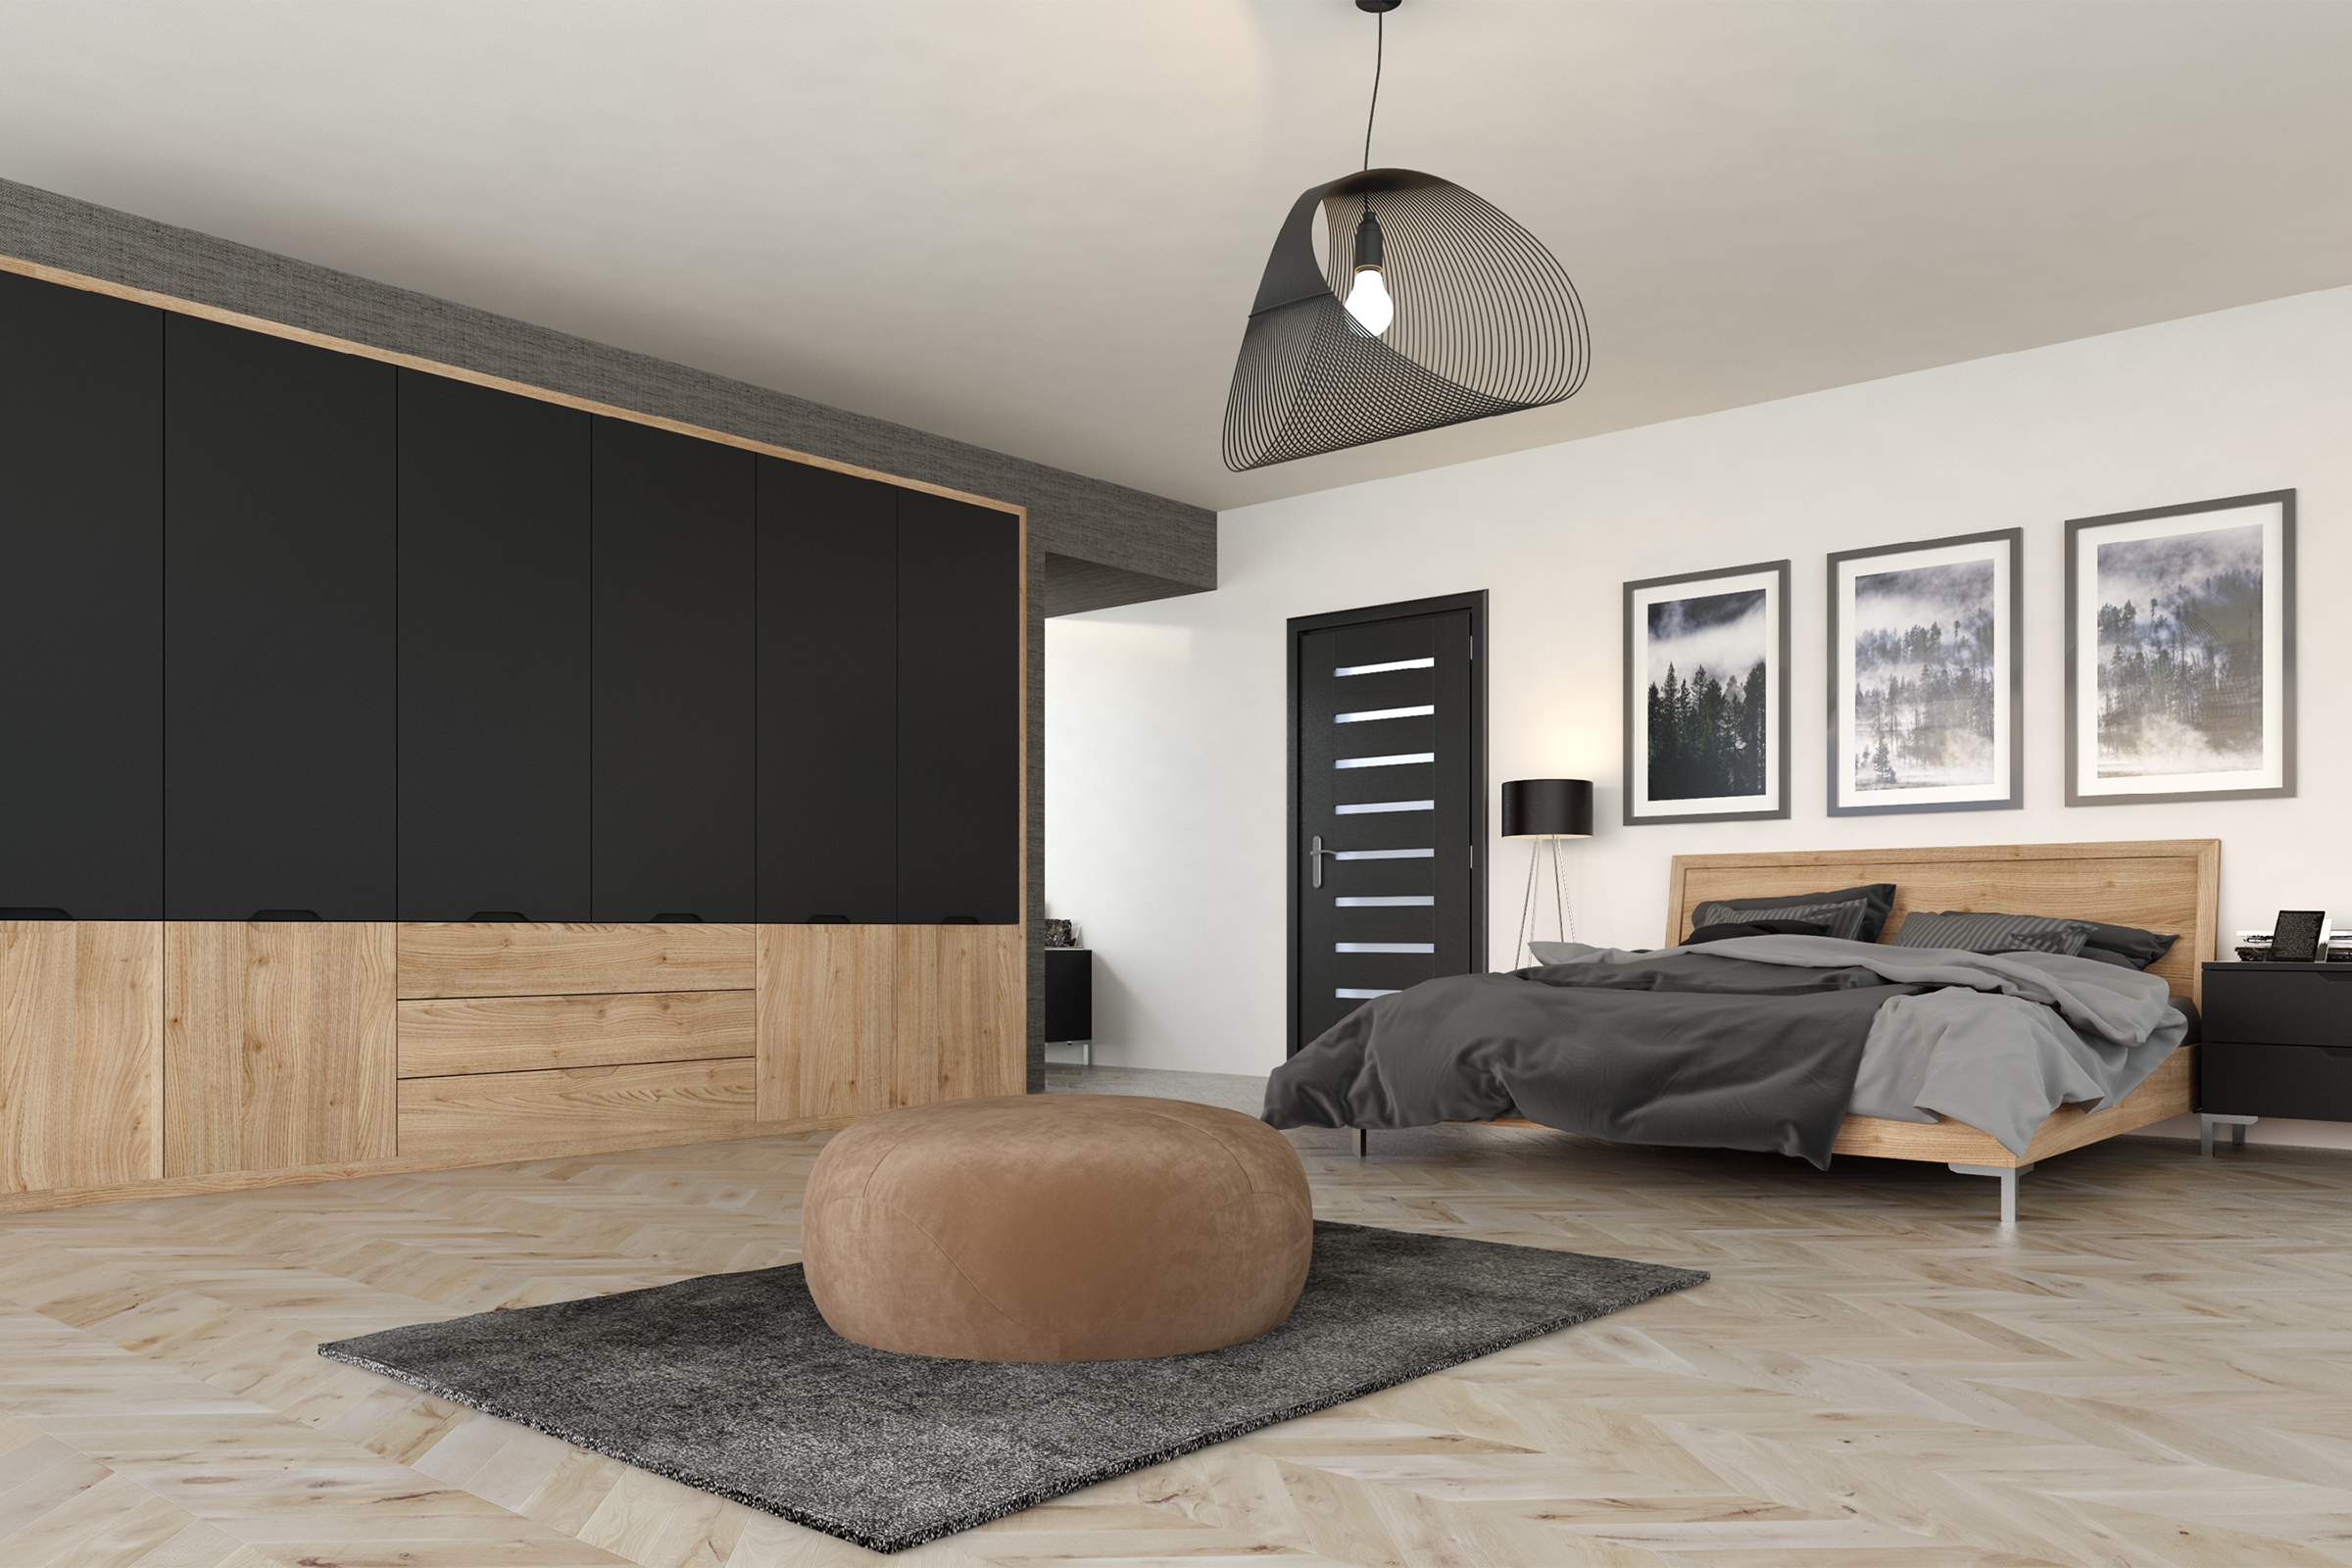 Bella Matt Graphite / Bella Tortona Natural Oak / Style: Integra